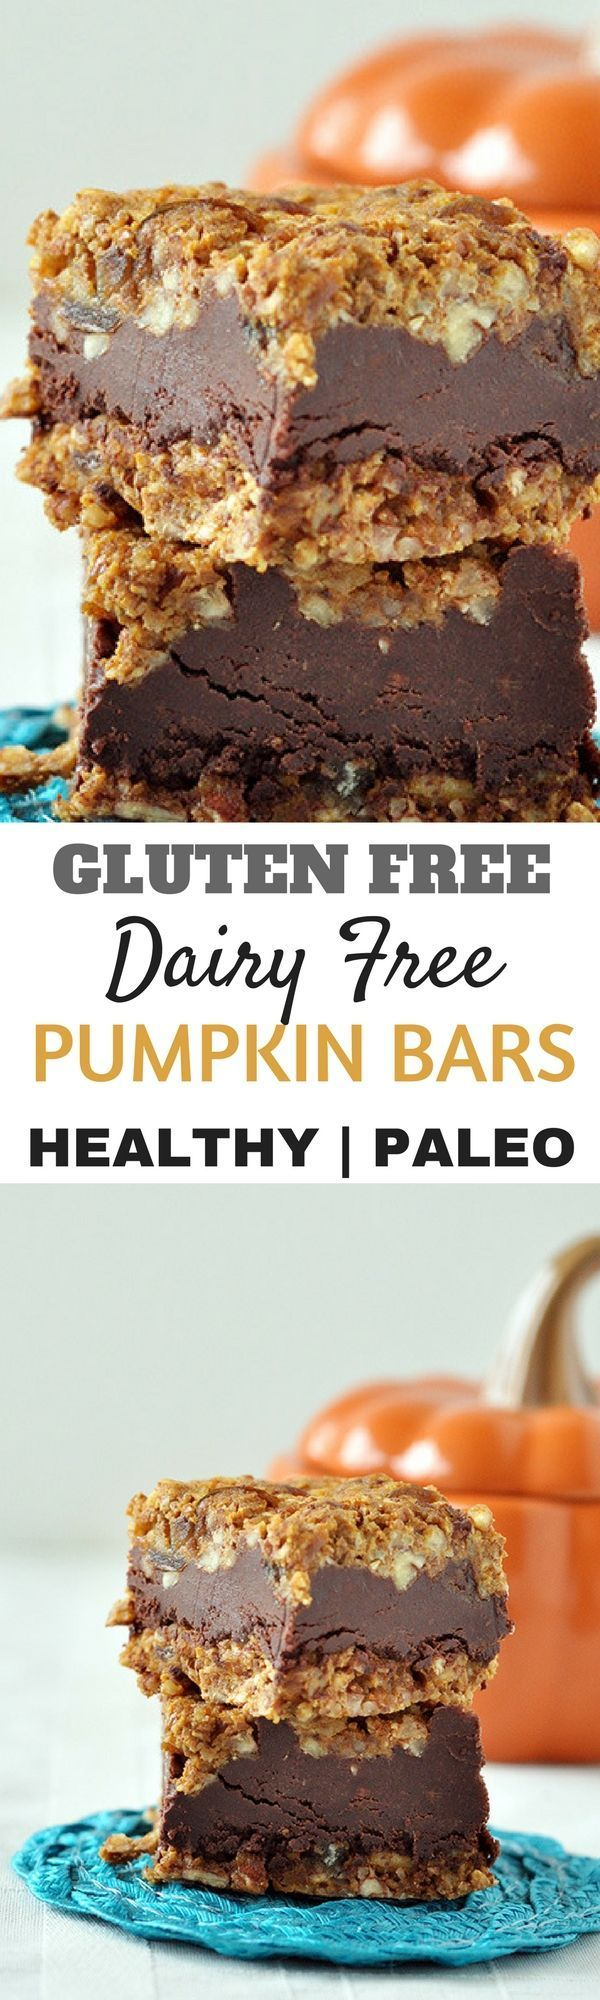 Thanksgiving desserts that are gluten free and paleo. Easy holiday treats for seasonal celebrations. Pumpkin recipes. Best Paleo pumpkin pie!